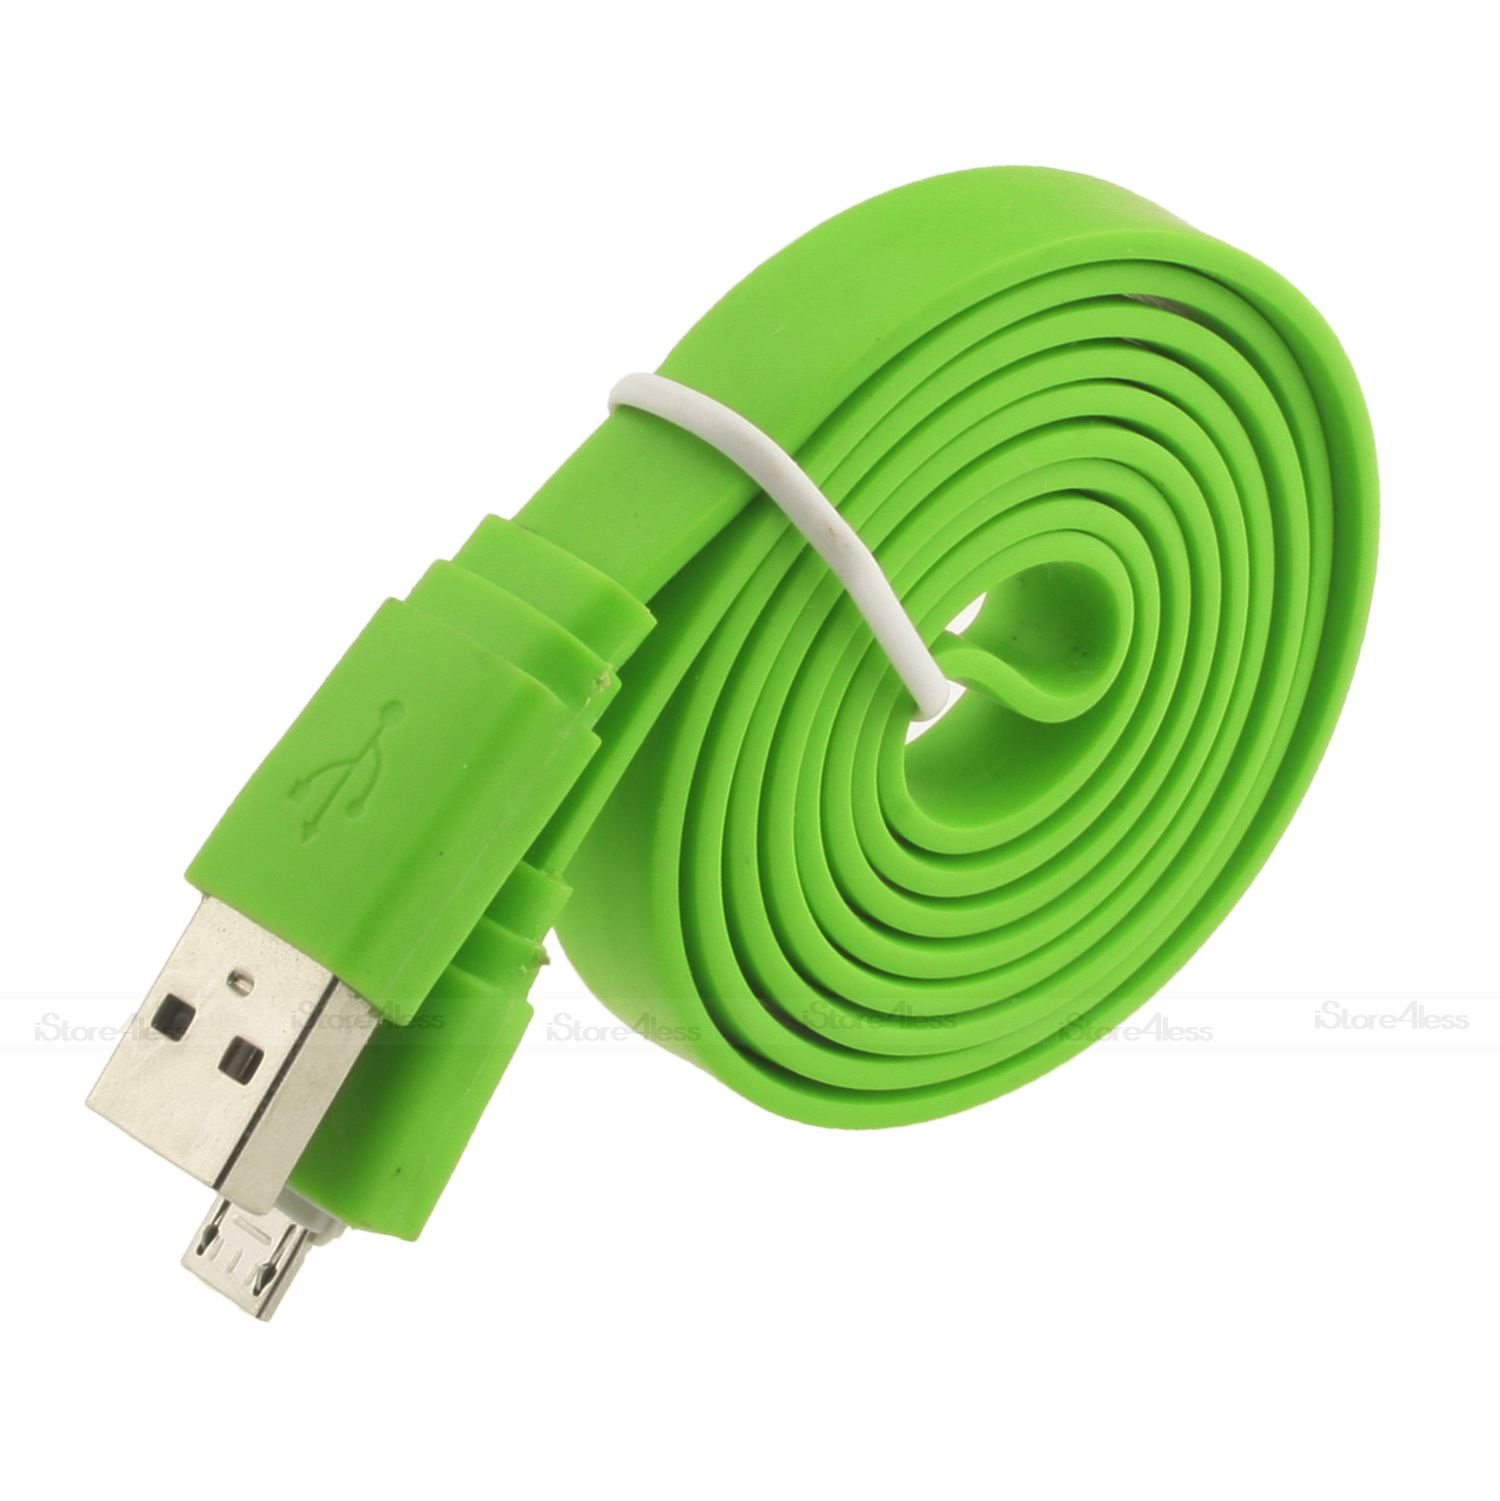 1M 2M 3M FLAT NOODLE MICRO USB CHARGER CABLE FOR SAMSUNG GALAXY S2 S3 S4 NOTE 2